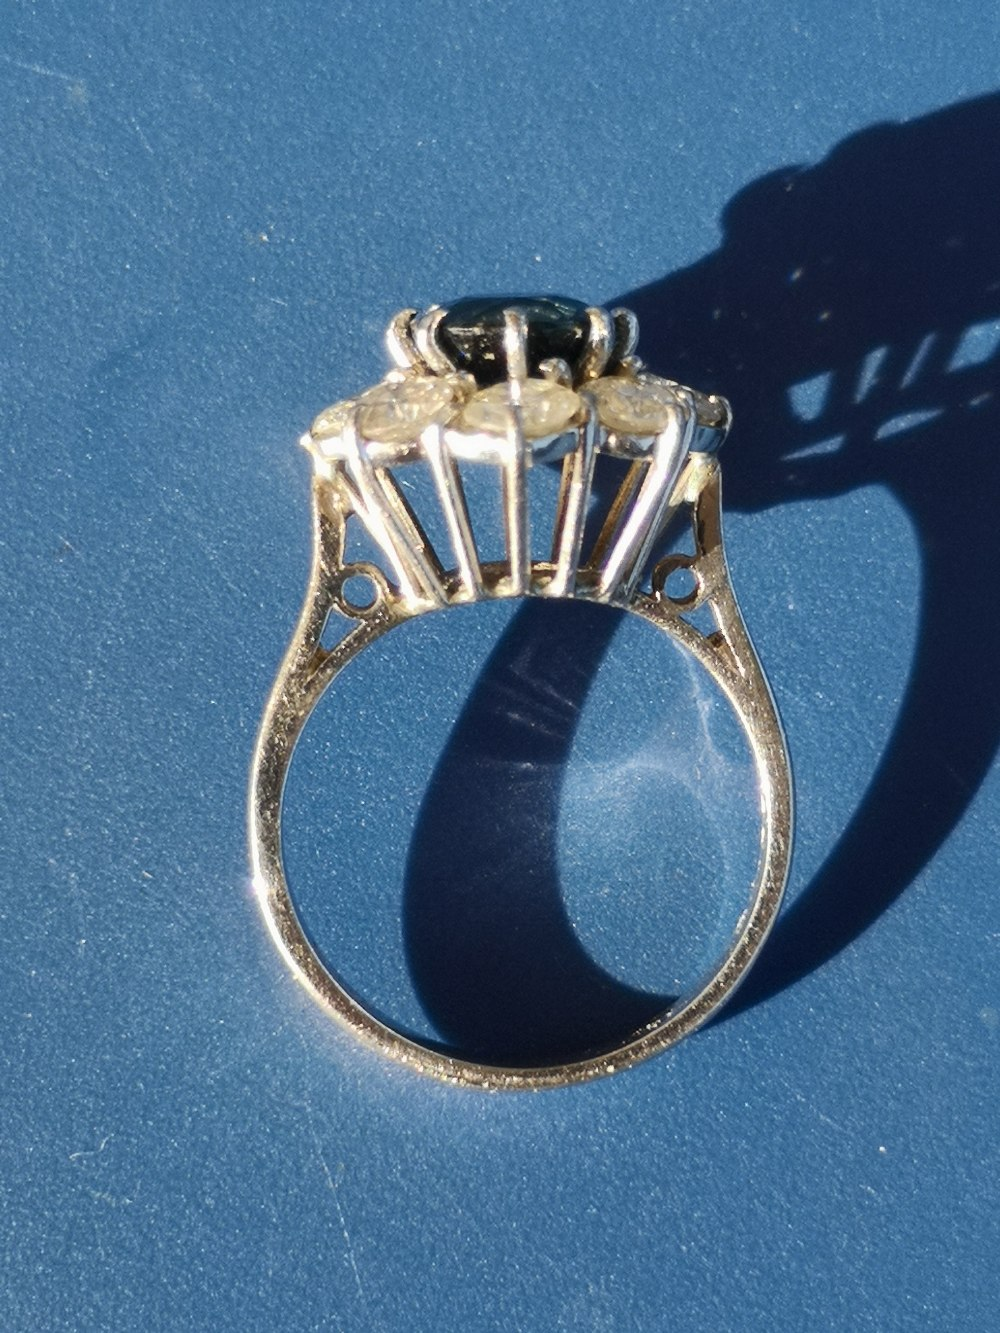 A modern sapphire & diamond 18ct white gold cluster ring - London marks. Finger size L. - Image 2 of 4